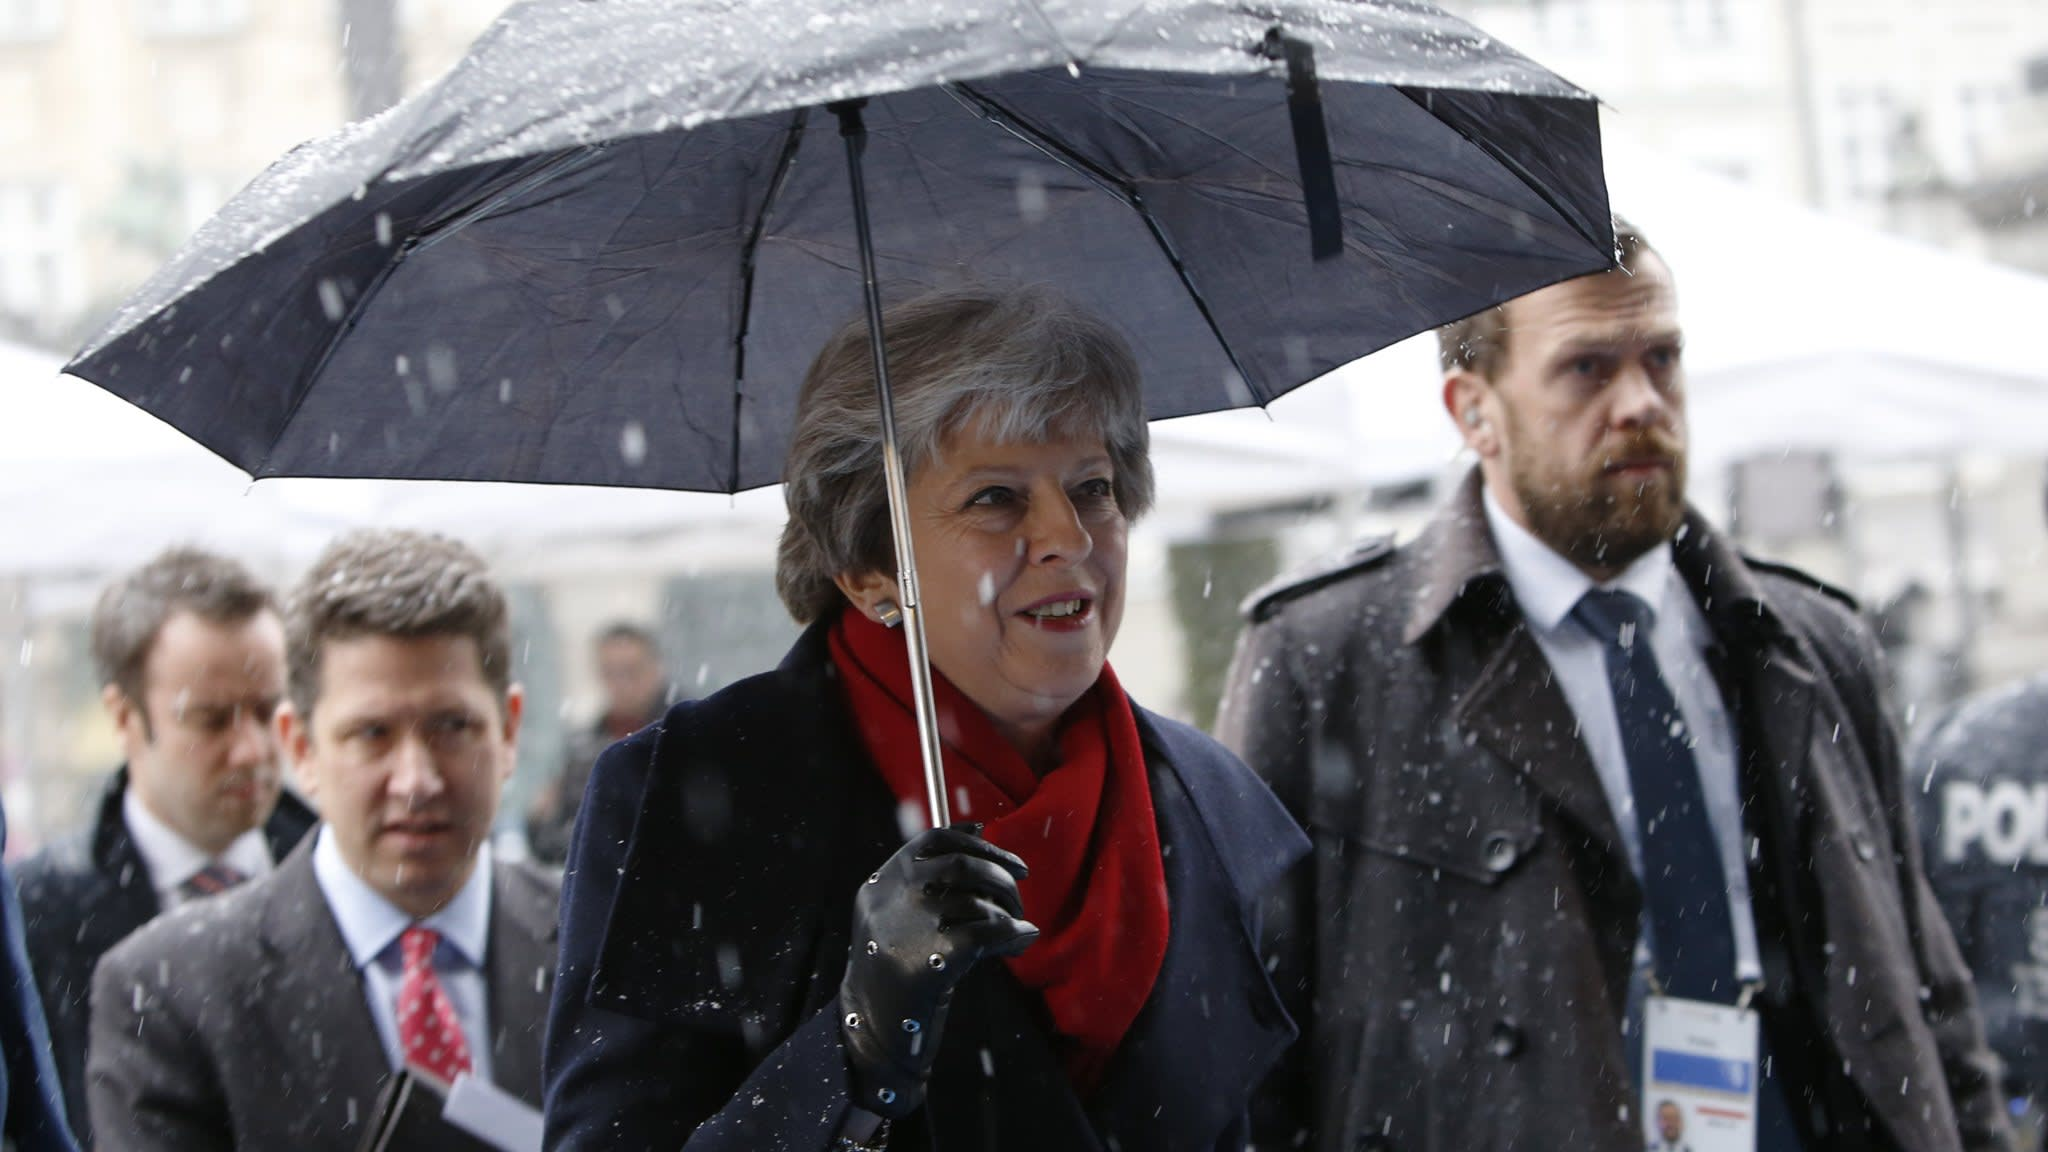 May gives credible but uncompelling view on post-Brexit defence